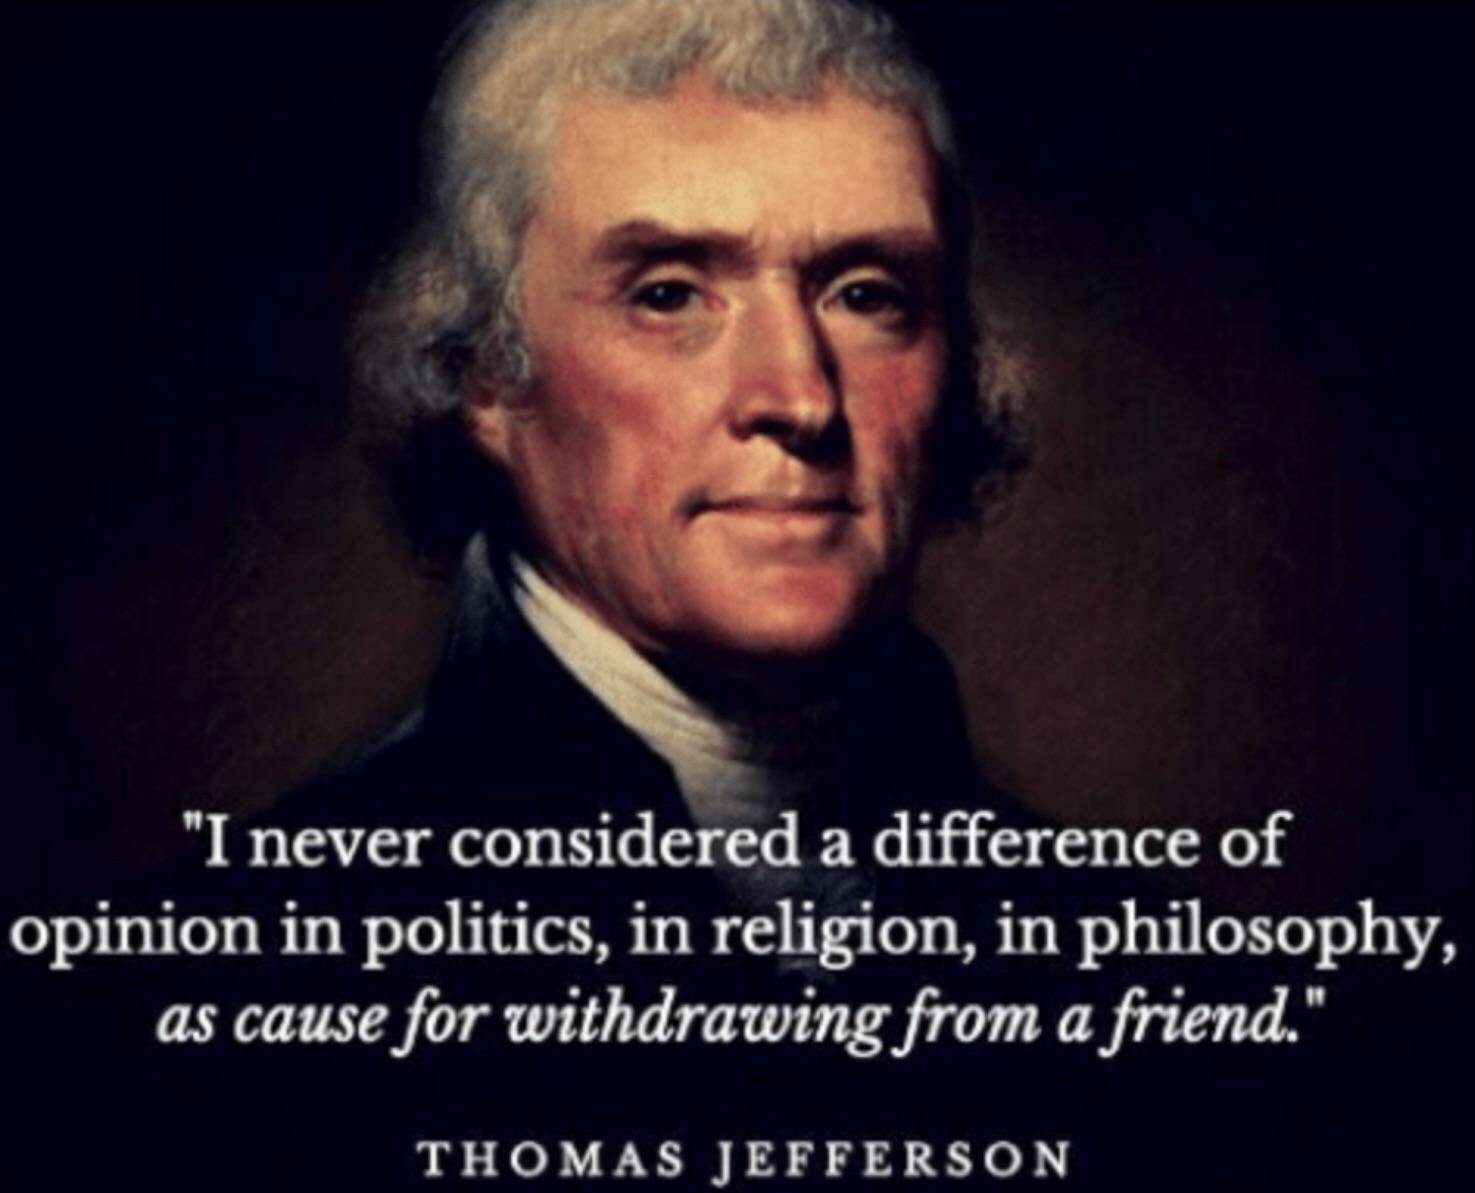 """I never considered a difference of opinion in politics, in religion, in philosophy, as cause for withdrawing from a friend."" – Thomas Jefferson to William Hamilton, April 22, 1800"